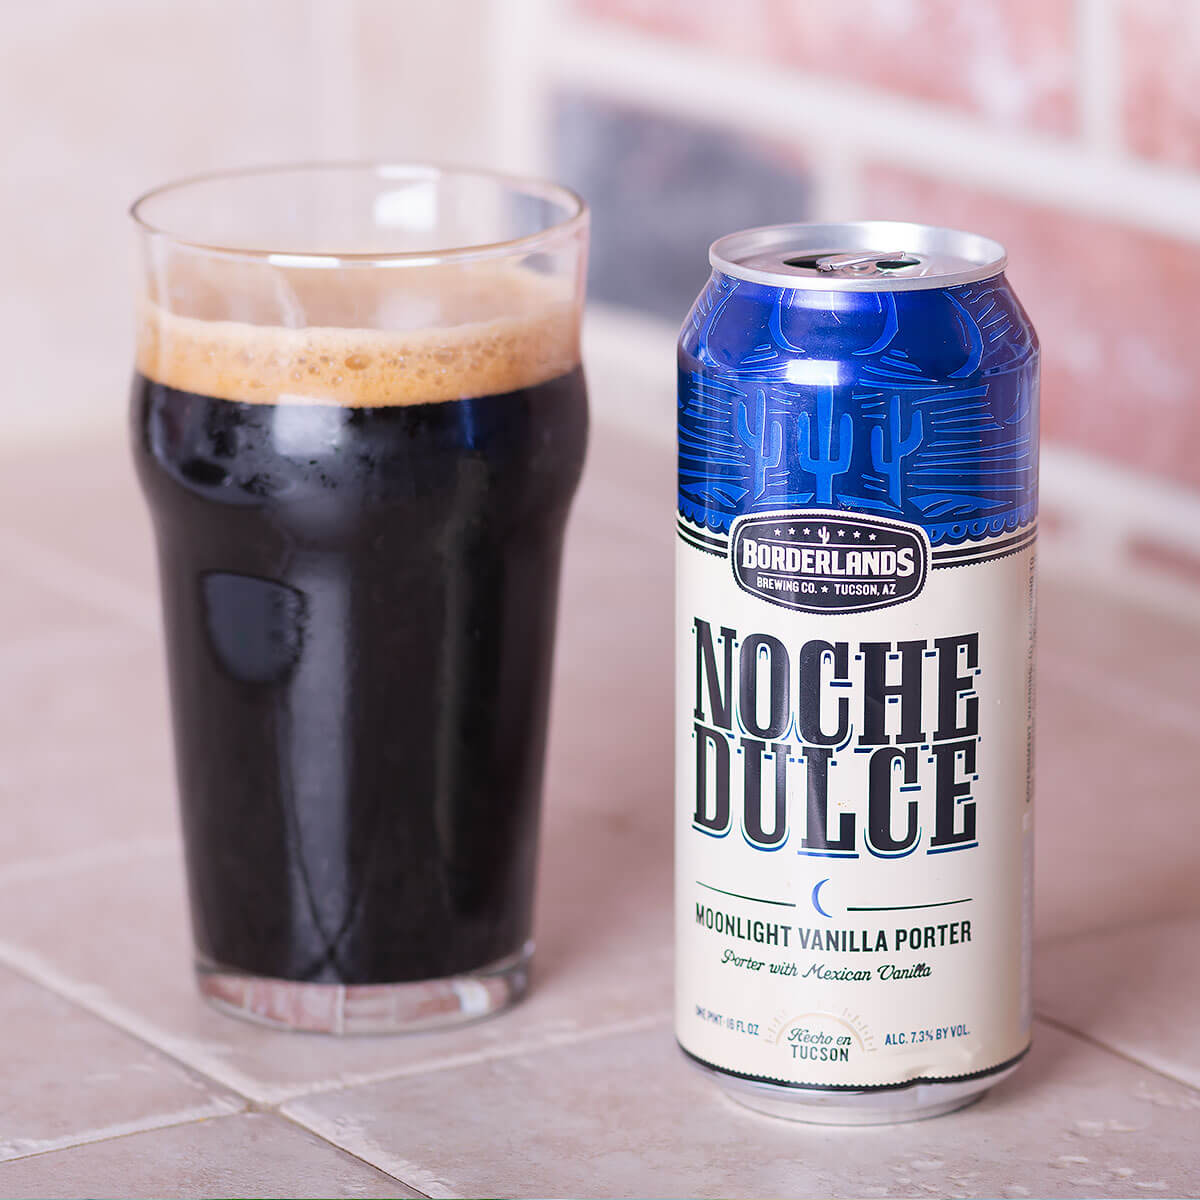 Noche Dulce is an American Porter brewed by Borderlands Brewing Co. that blends espresso roast with hints of sweet Mexican vanilla and chocolate.